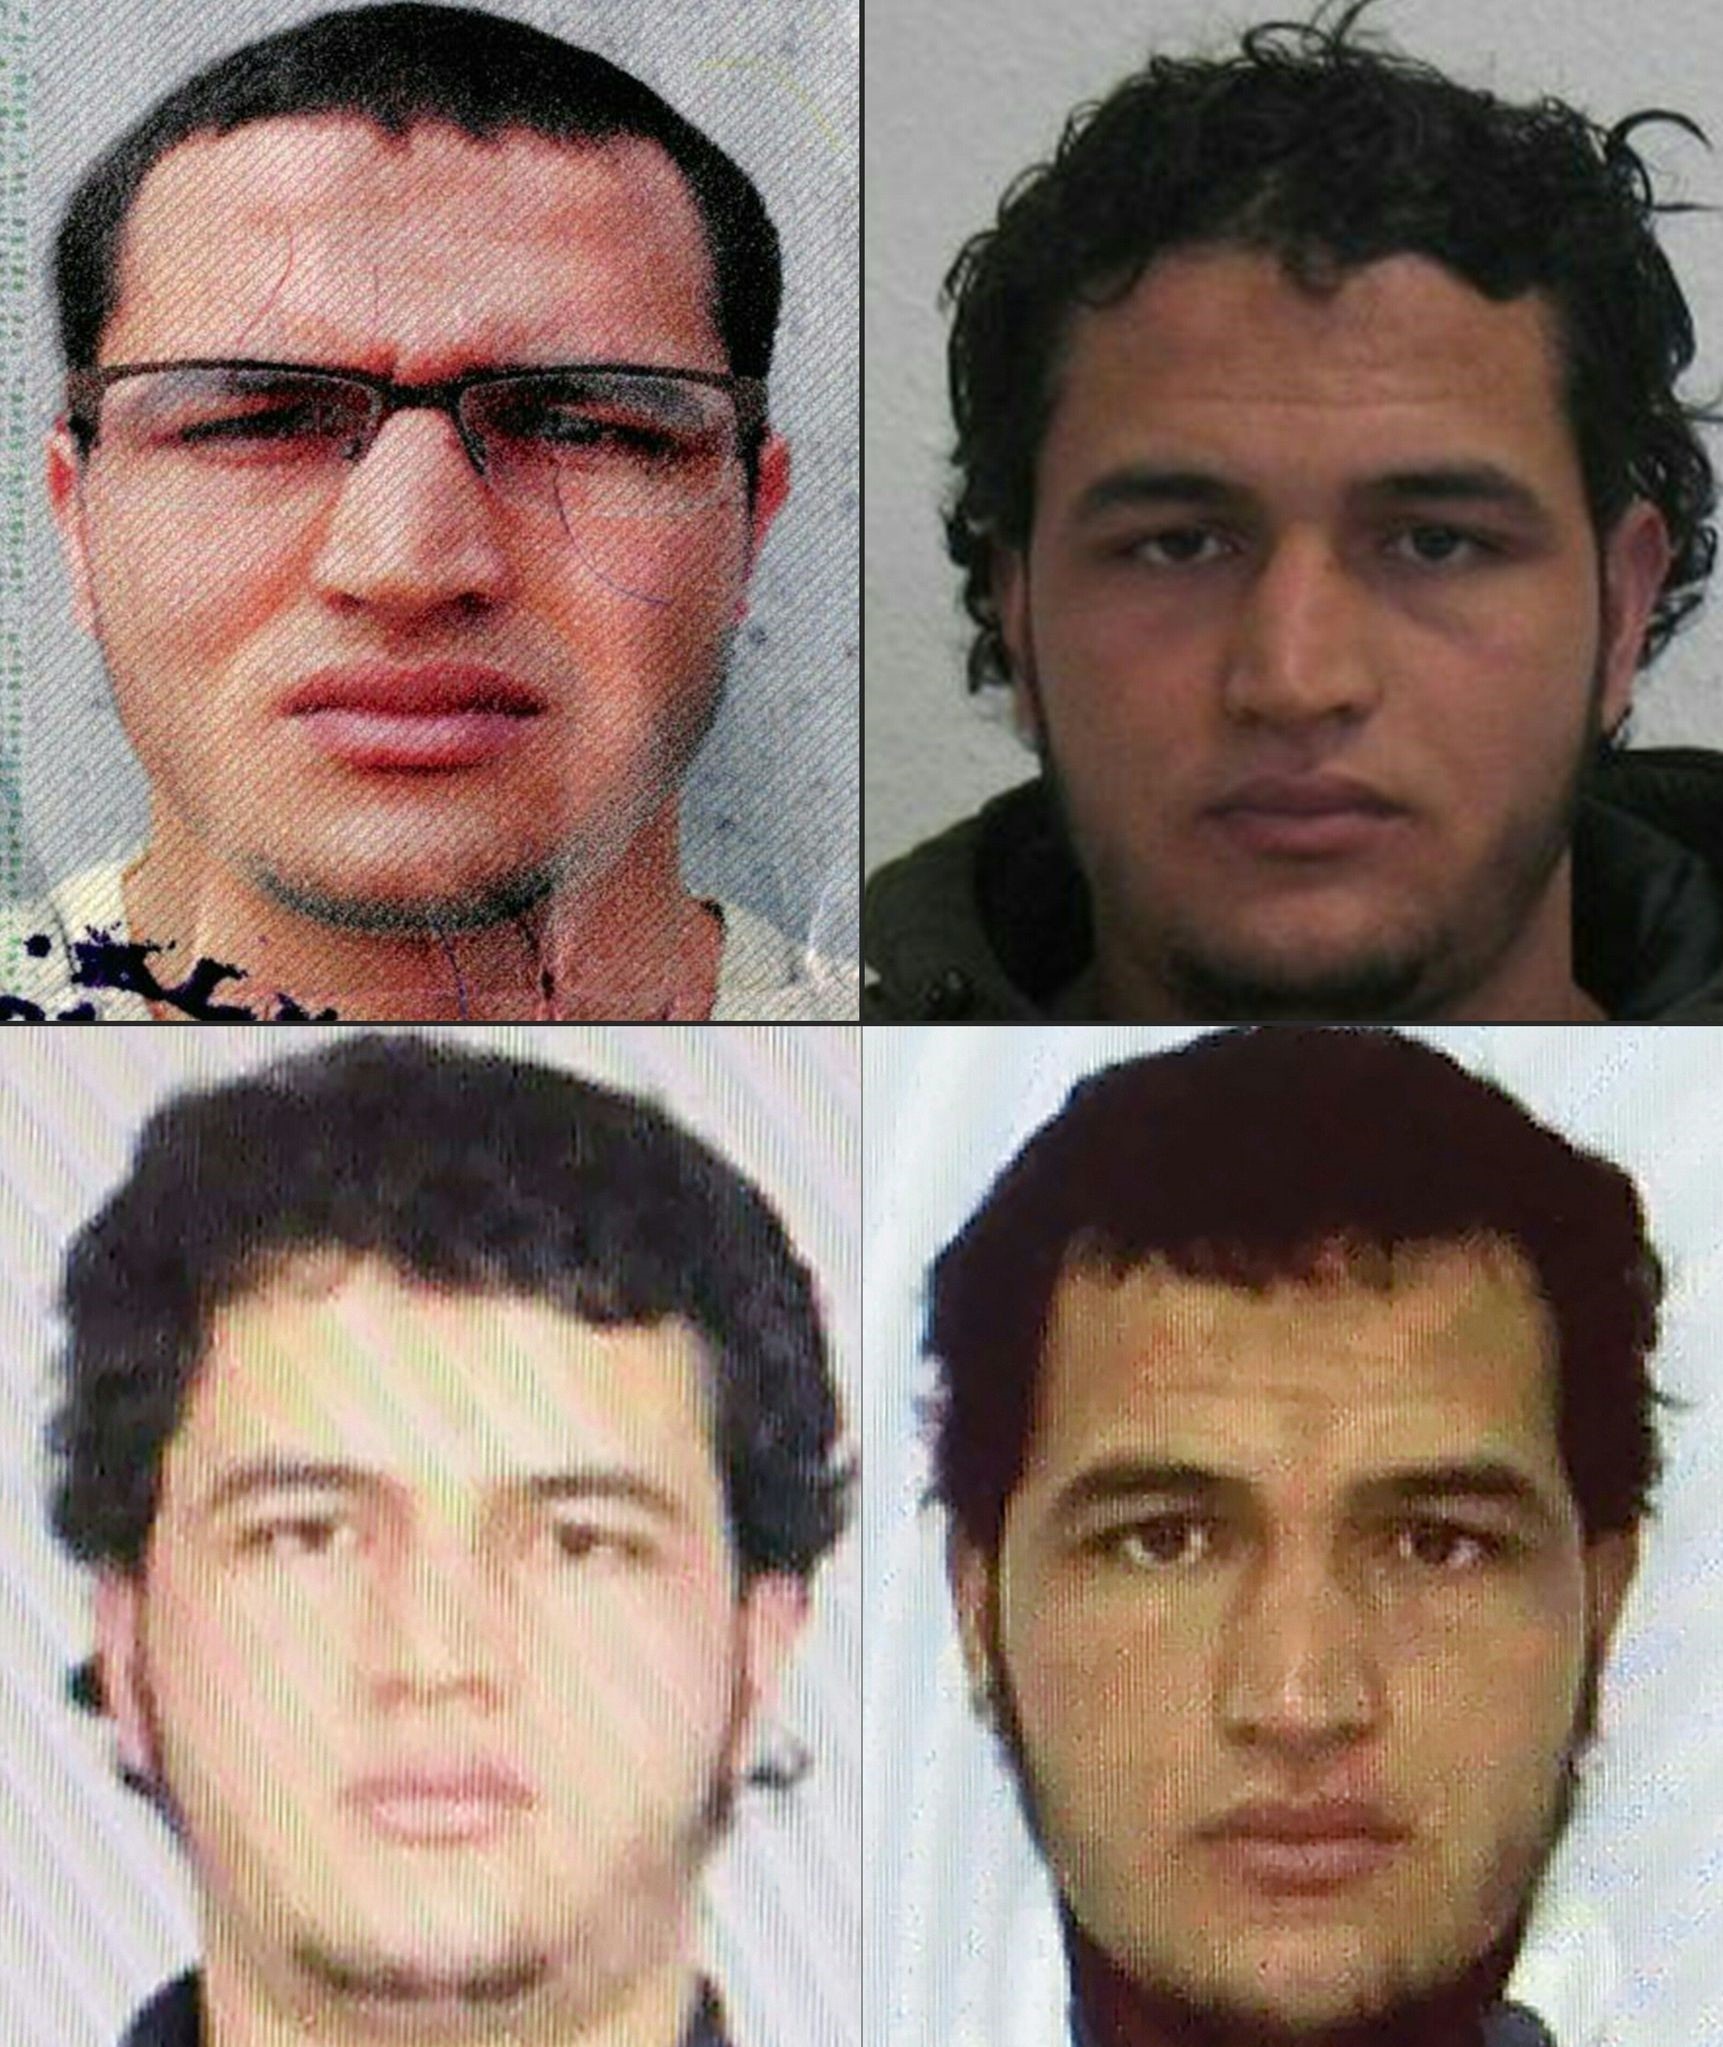 This combination of pictures created shows handout portraits showing two pictures of Tunisian man identified as Anis Amri.